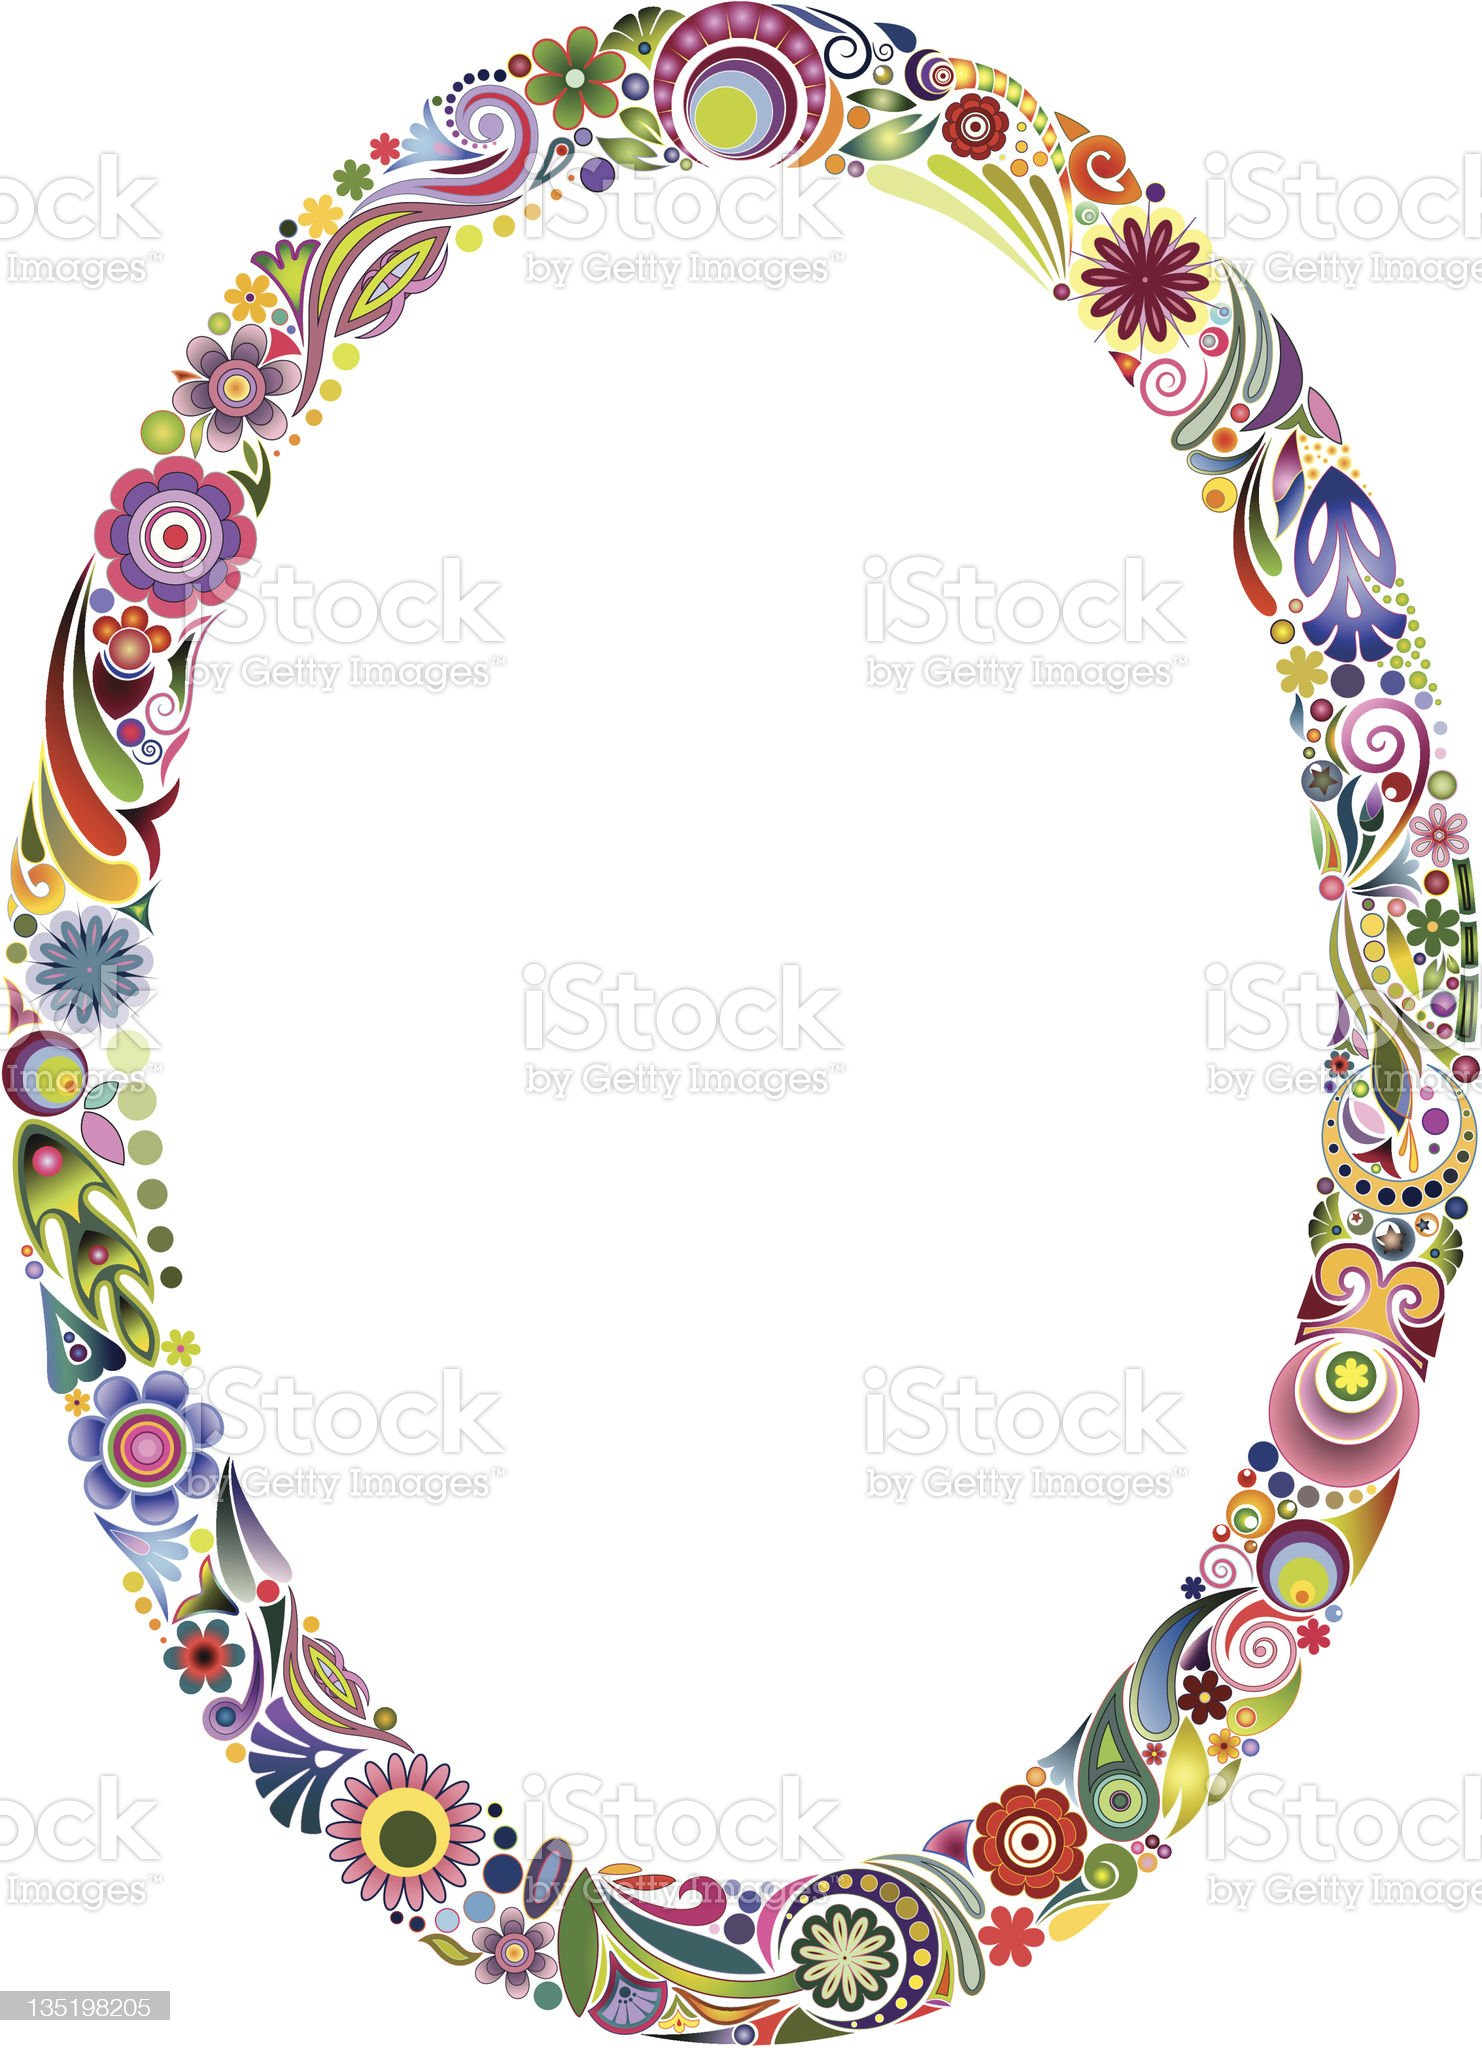 Oval floral frame royalty-free stock vector art